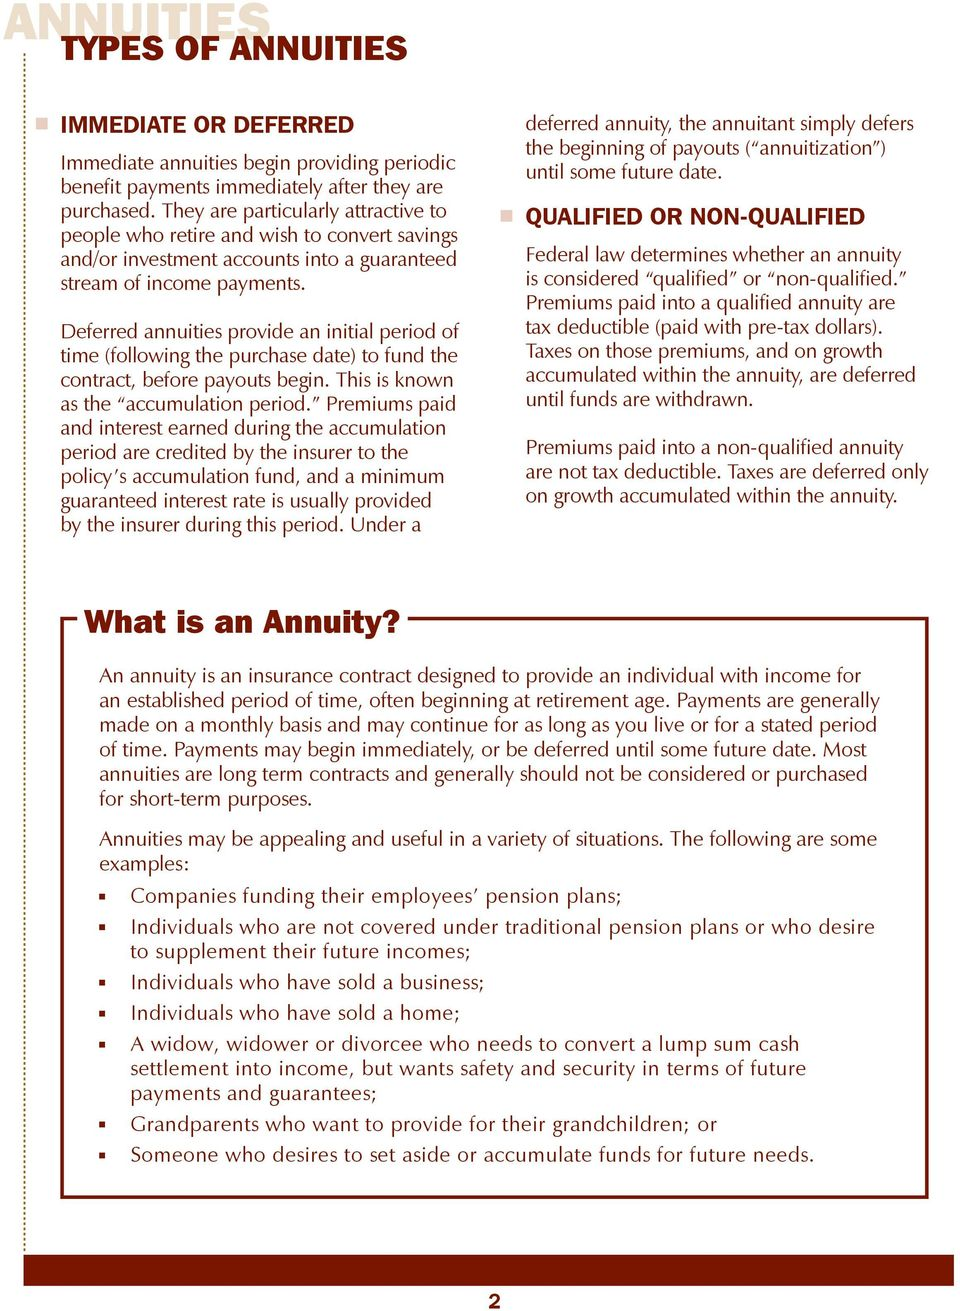 Deferred annuities provide an initial period of time (following the purchase date) to fund the contract, before payouts begin. This is known as the accumulation period.